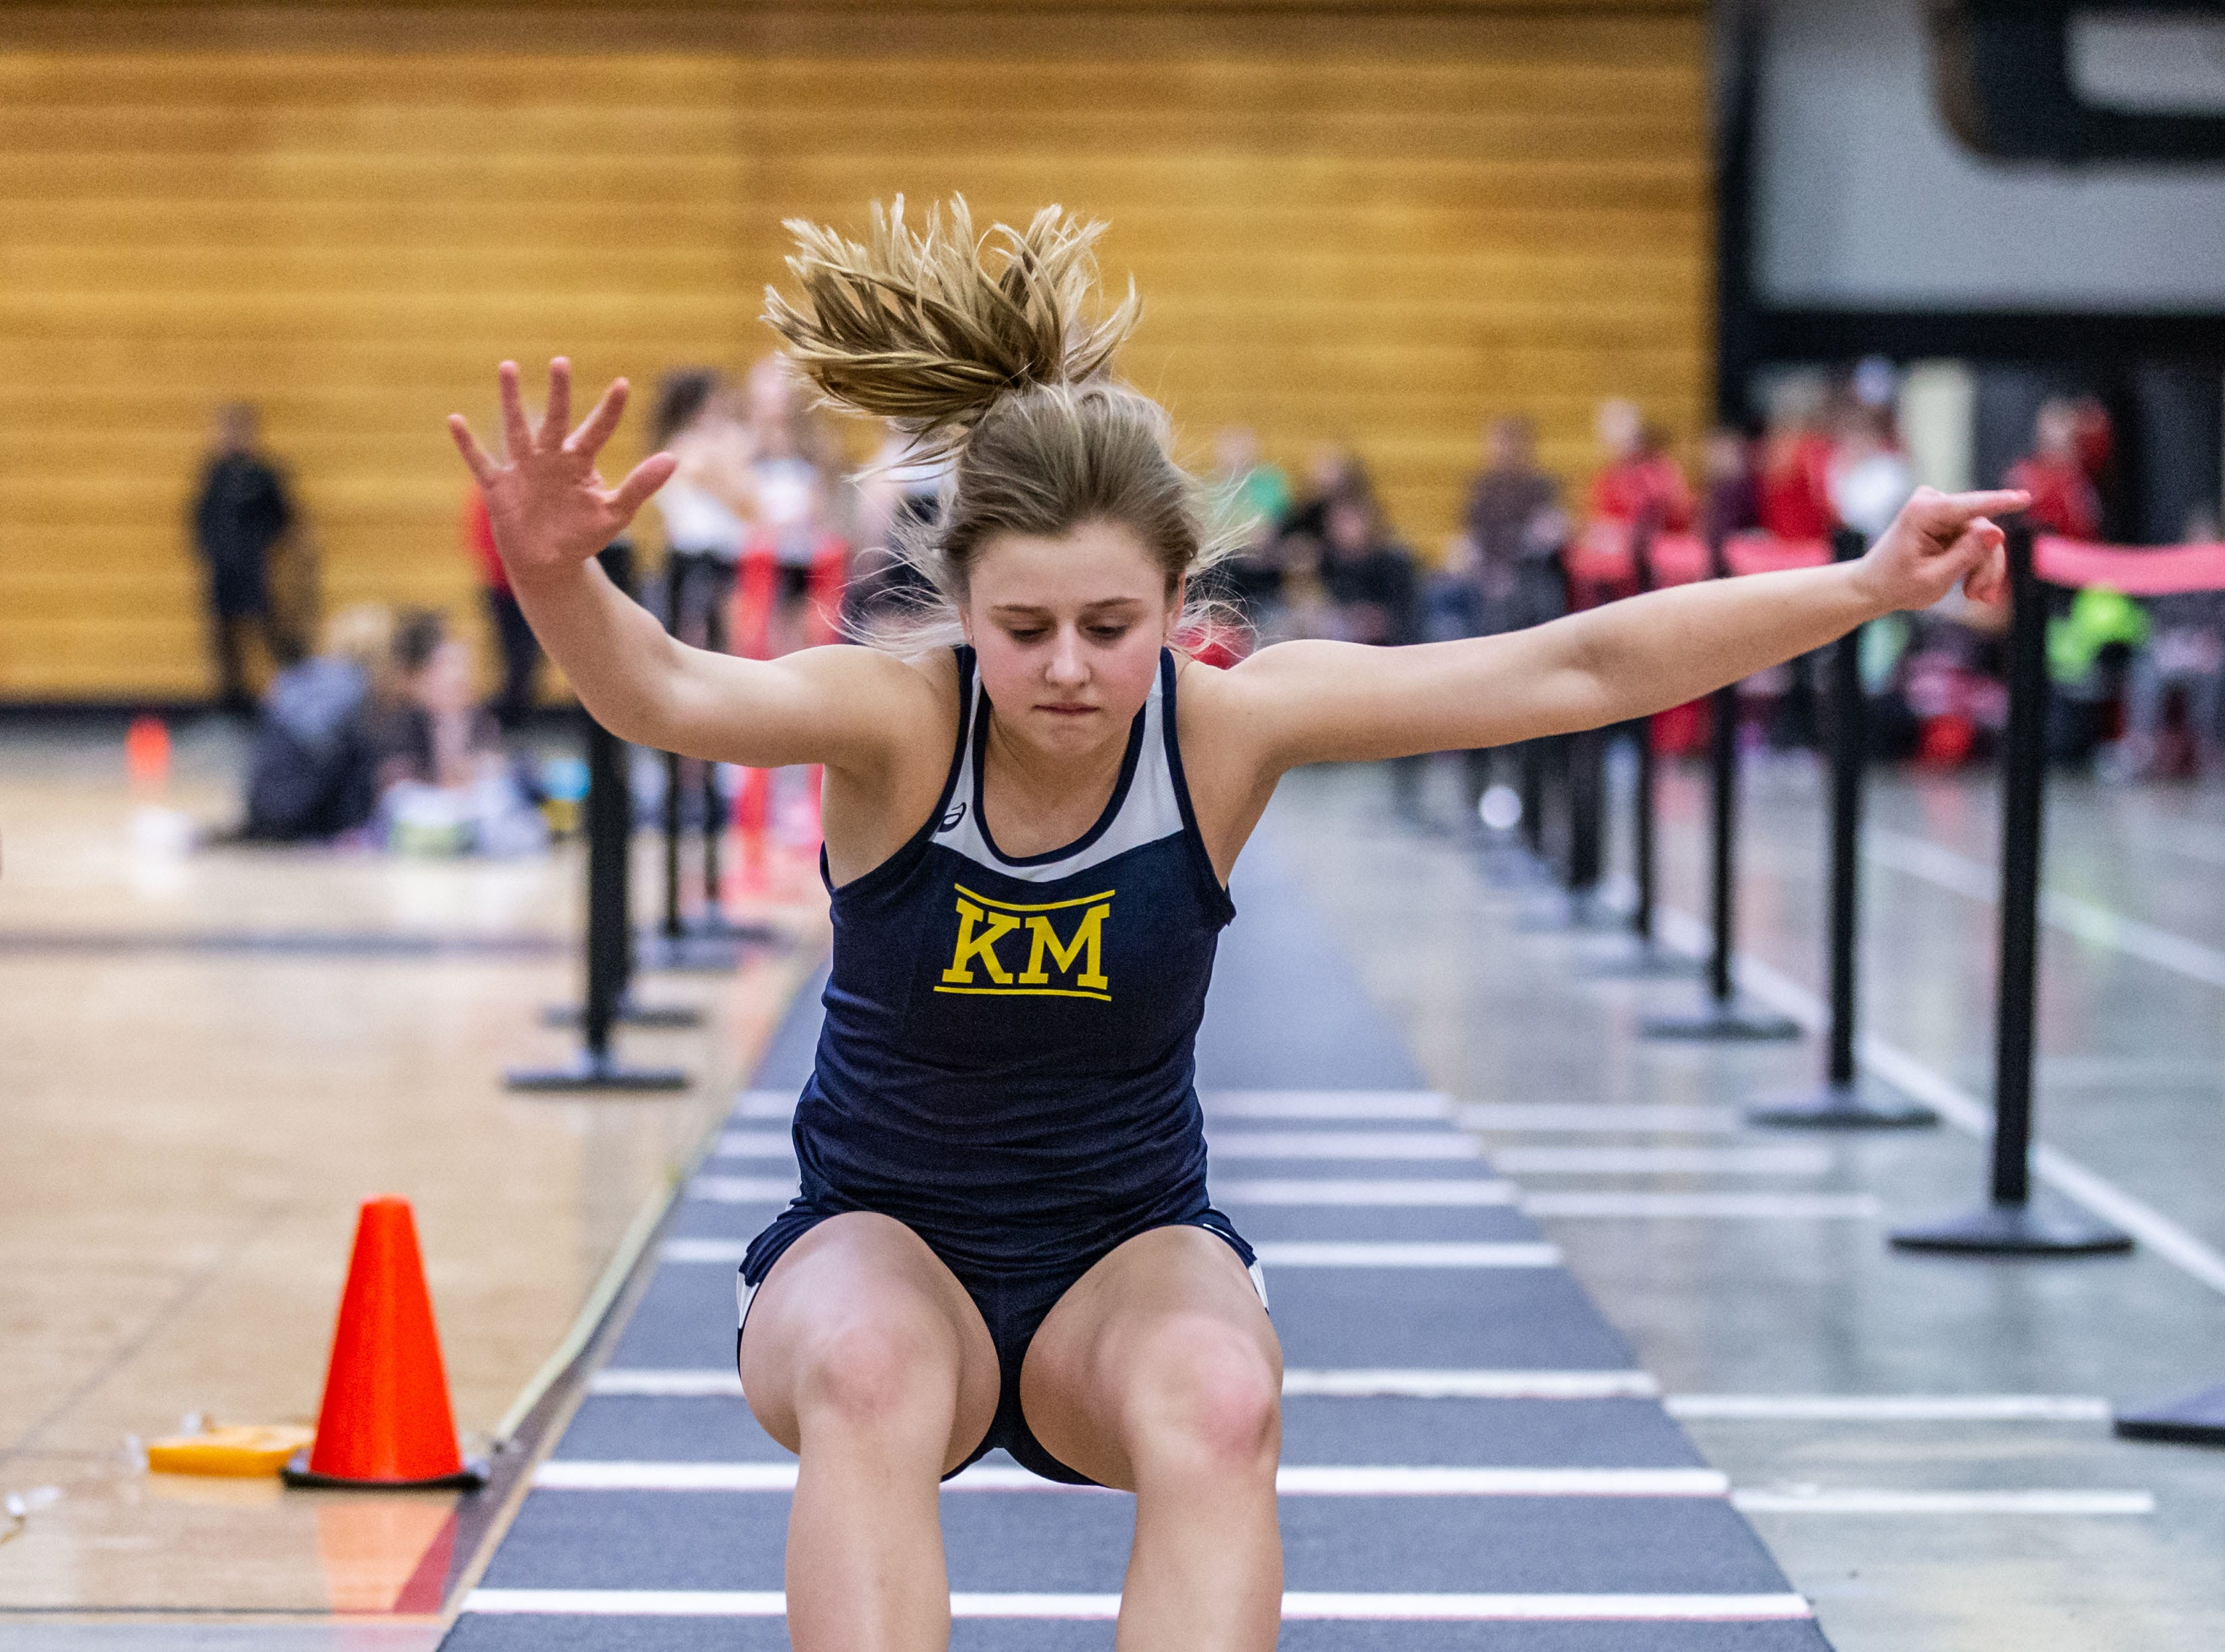 Kettle Moraine's Kaitlyn Huebner competes in the long jump at the Peter Rempe Cardinal Relays hosted by Waukesha South on Thursday, March 21, 2019.